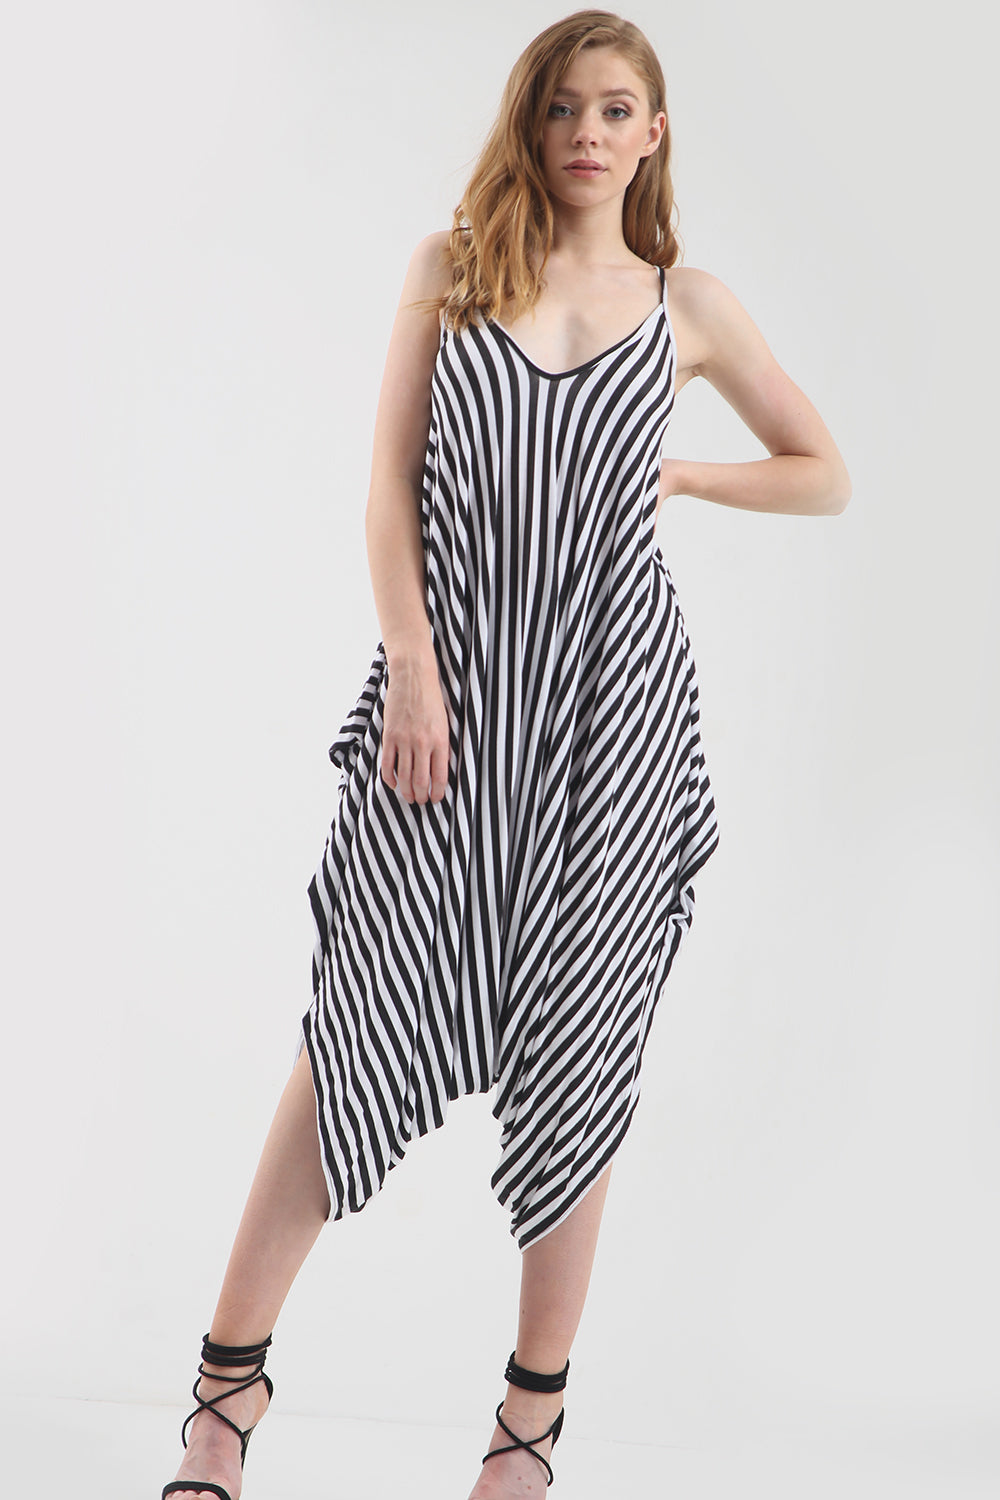 Strappy Monochrome Striped Harem Jumpsuit - bejealous-com